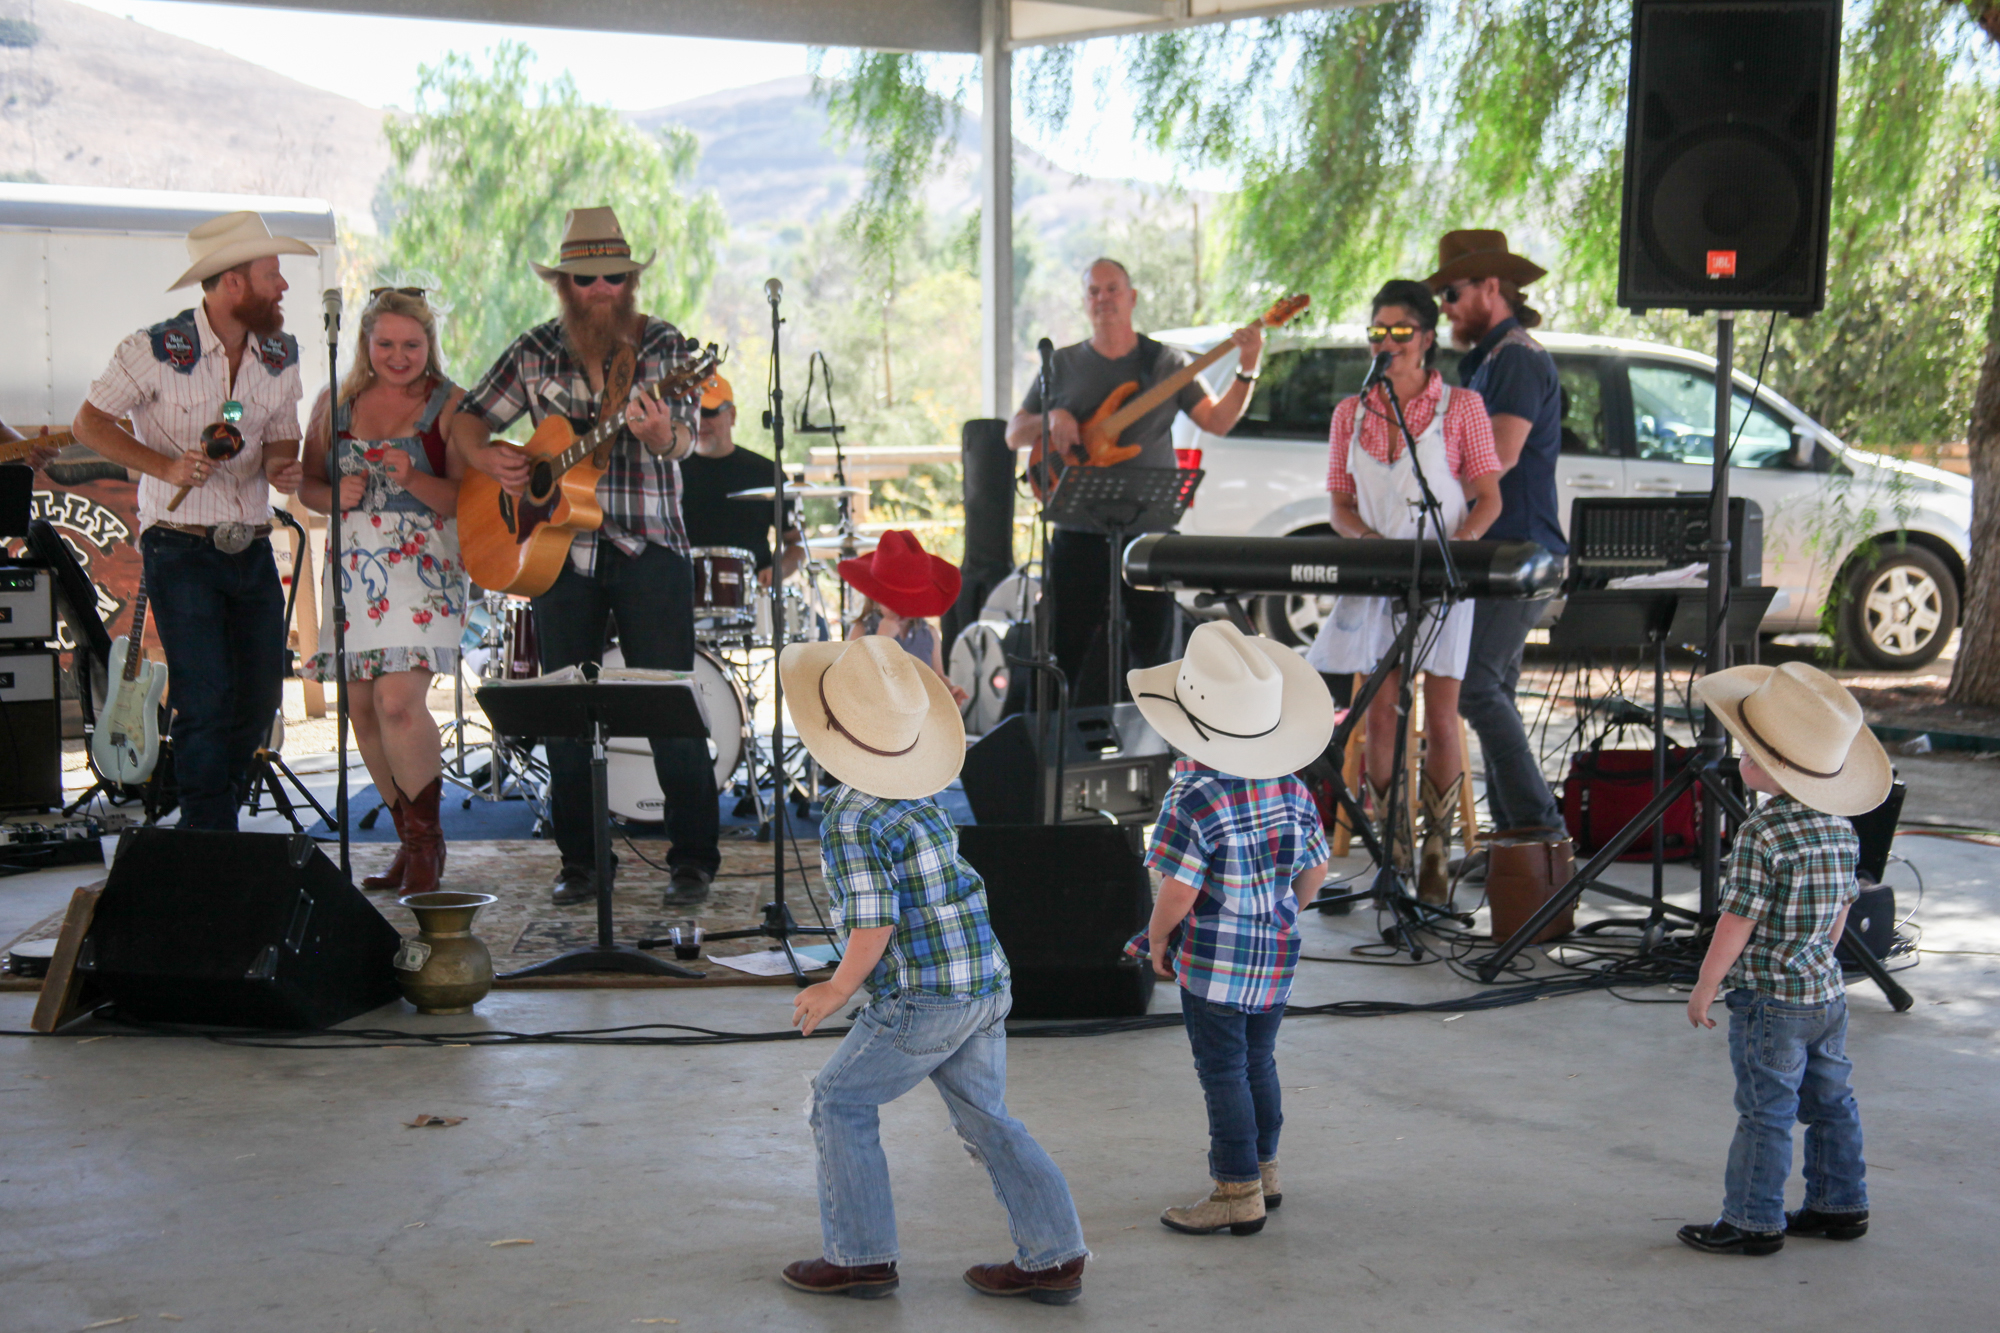 The next generation of Kelly boys watches their parents play at the 2016 Fiesta barbecue. Photo: Allison Jarrell